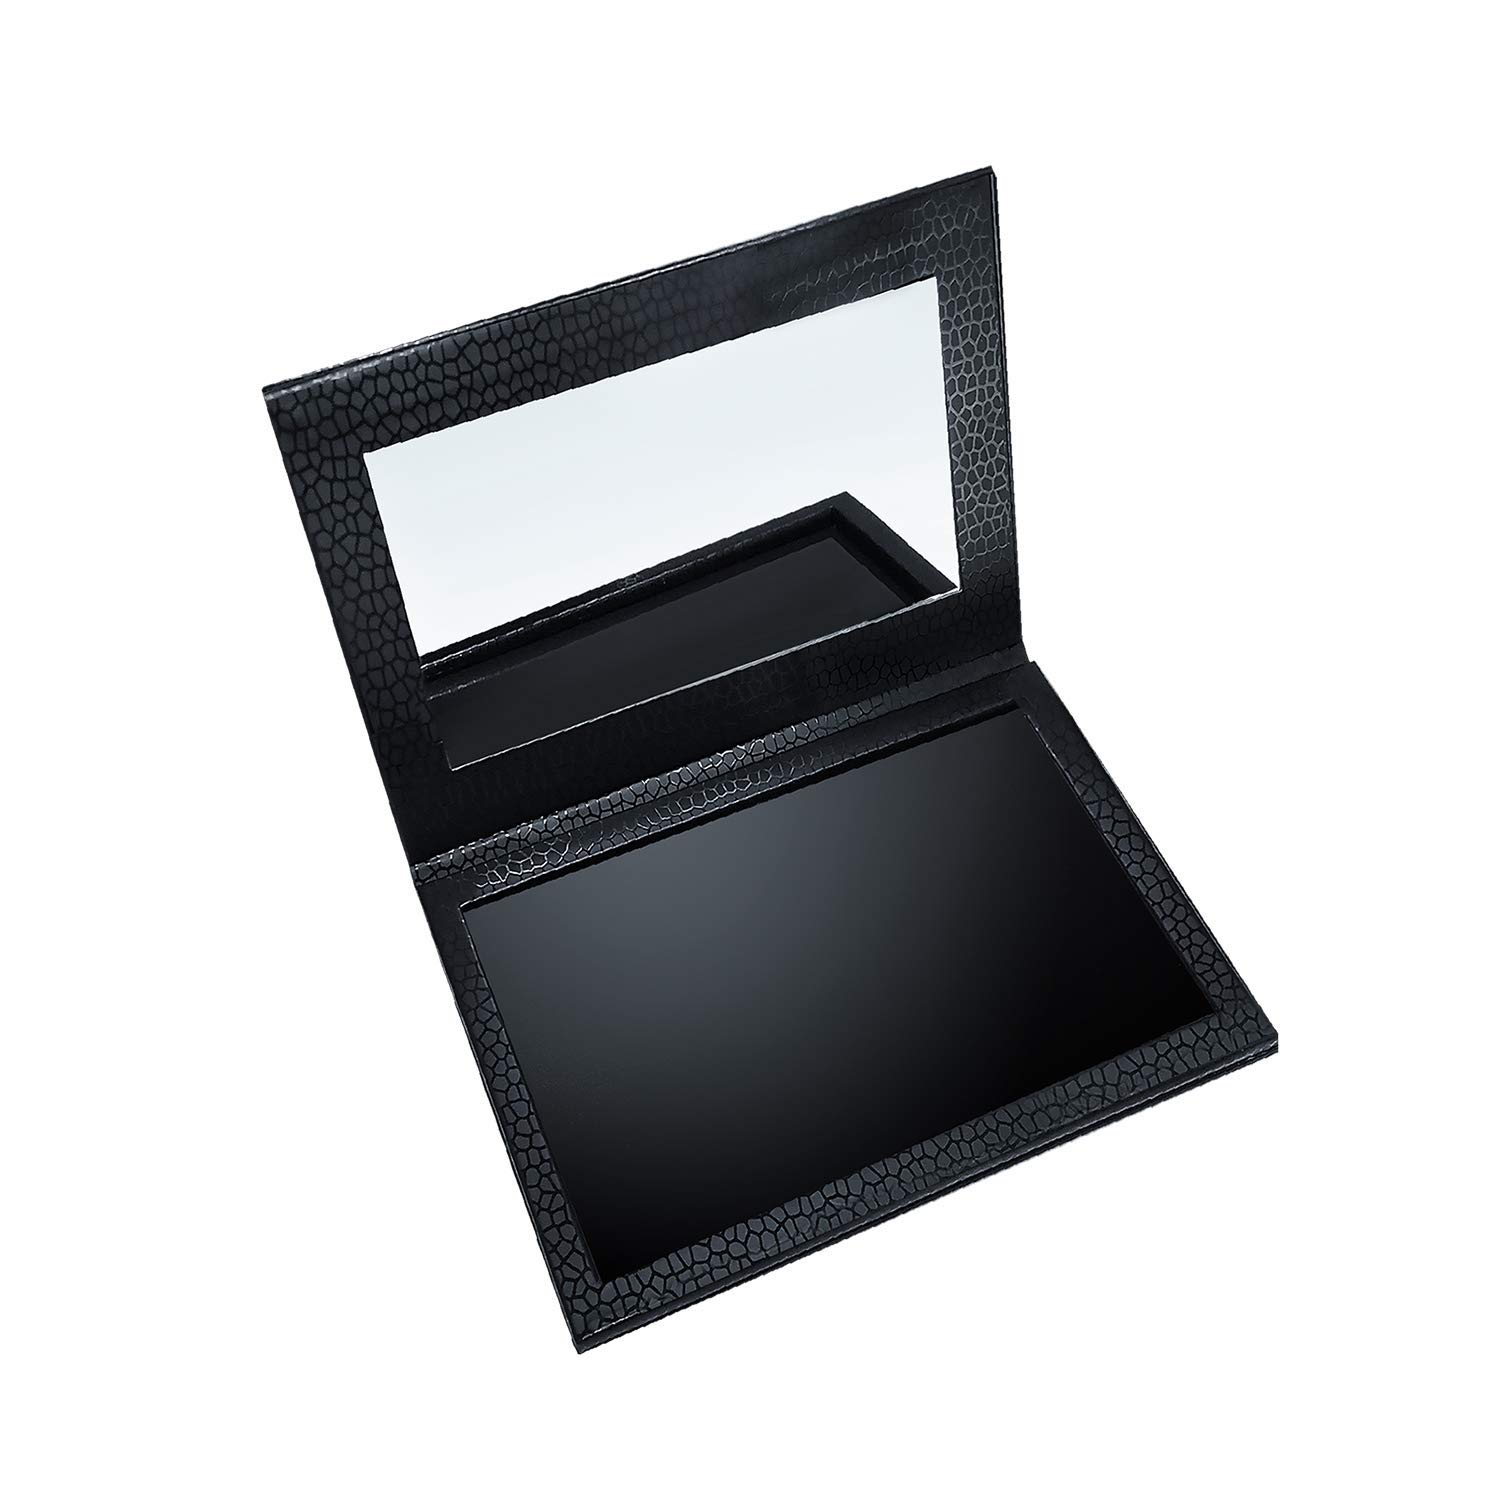 Allwon Magnetic Palette Empty Makeup Palette with Mirror for Eyeshadow Lipstick Blush Powder (Black)